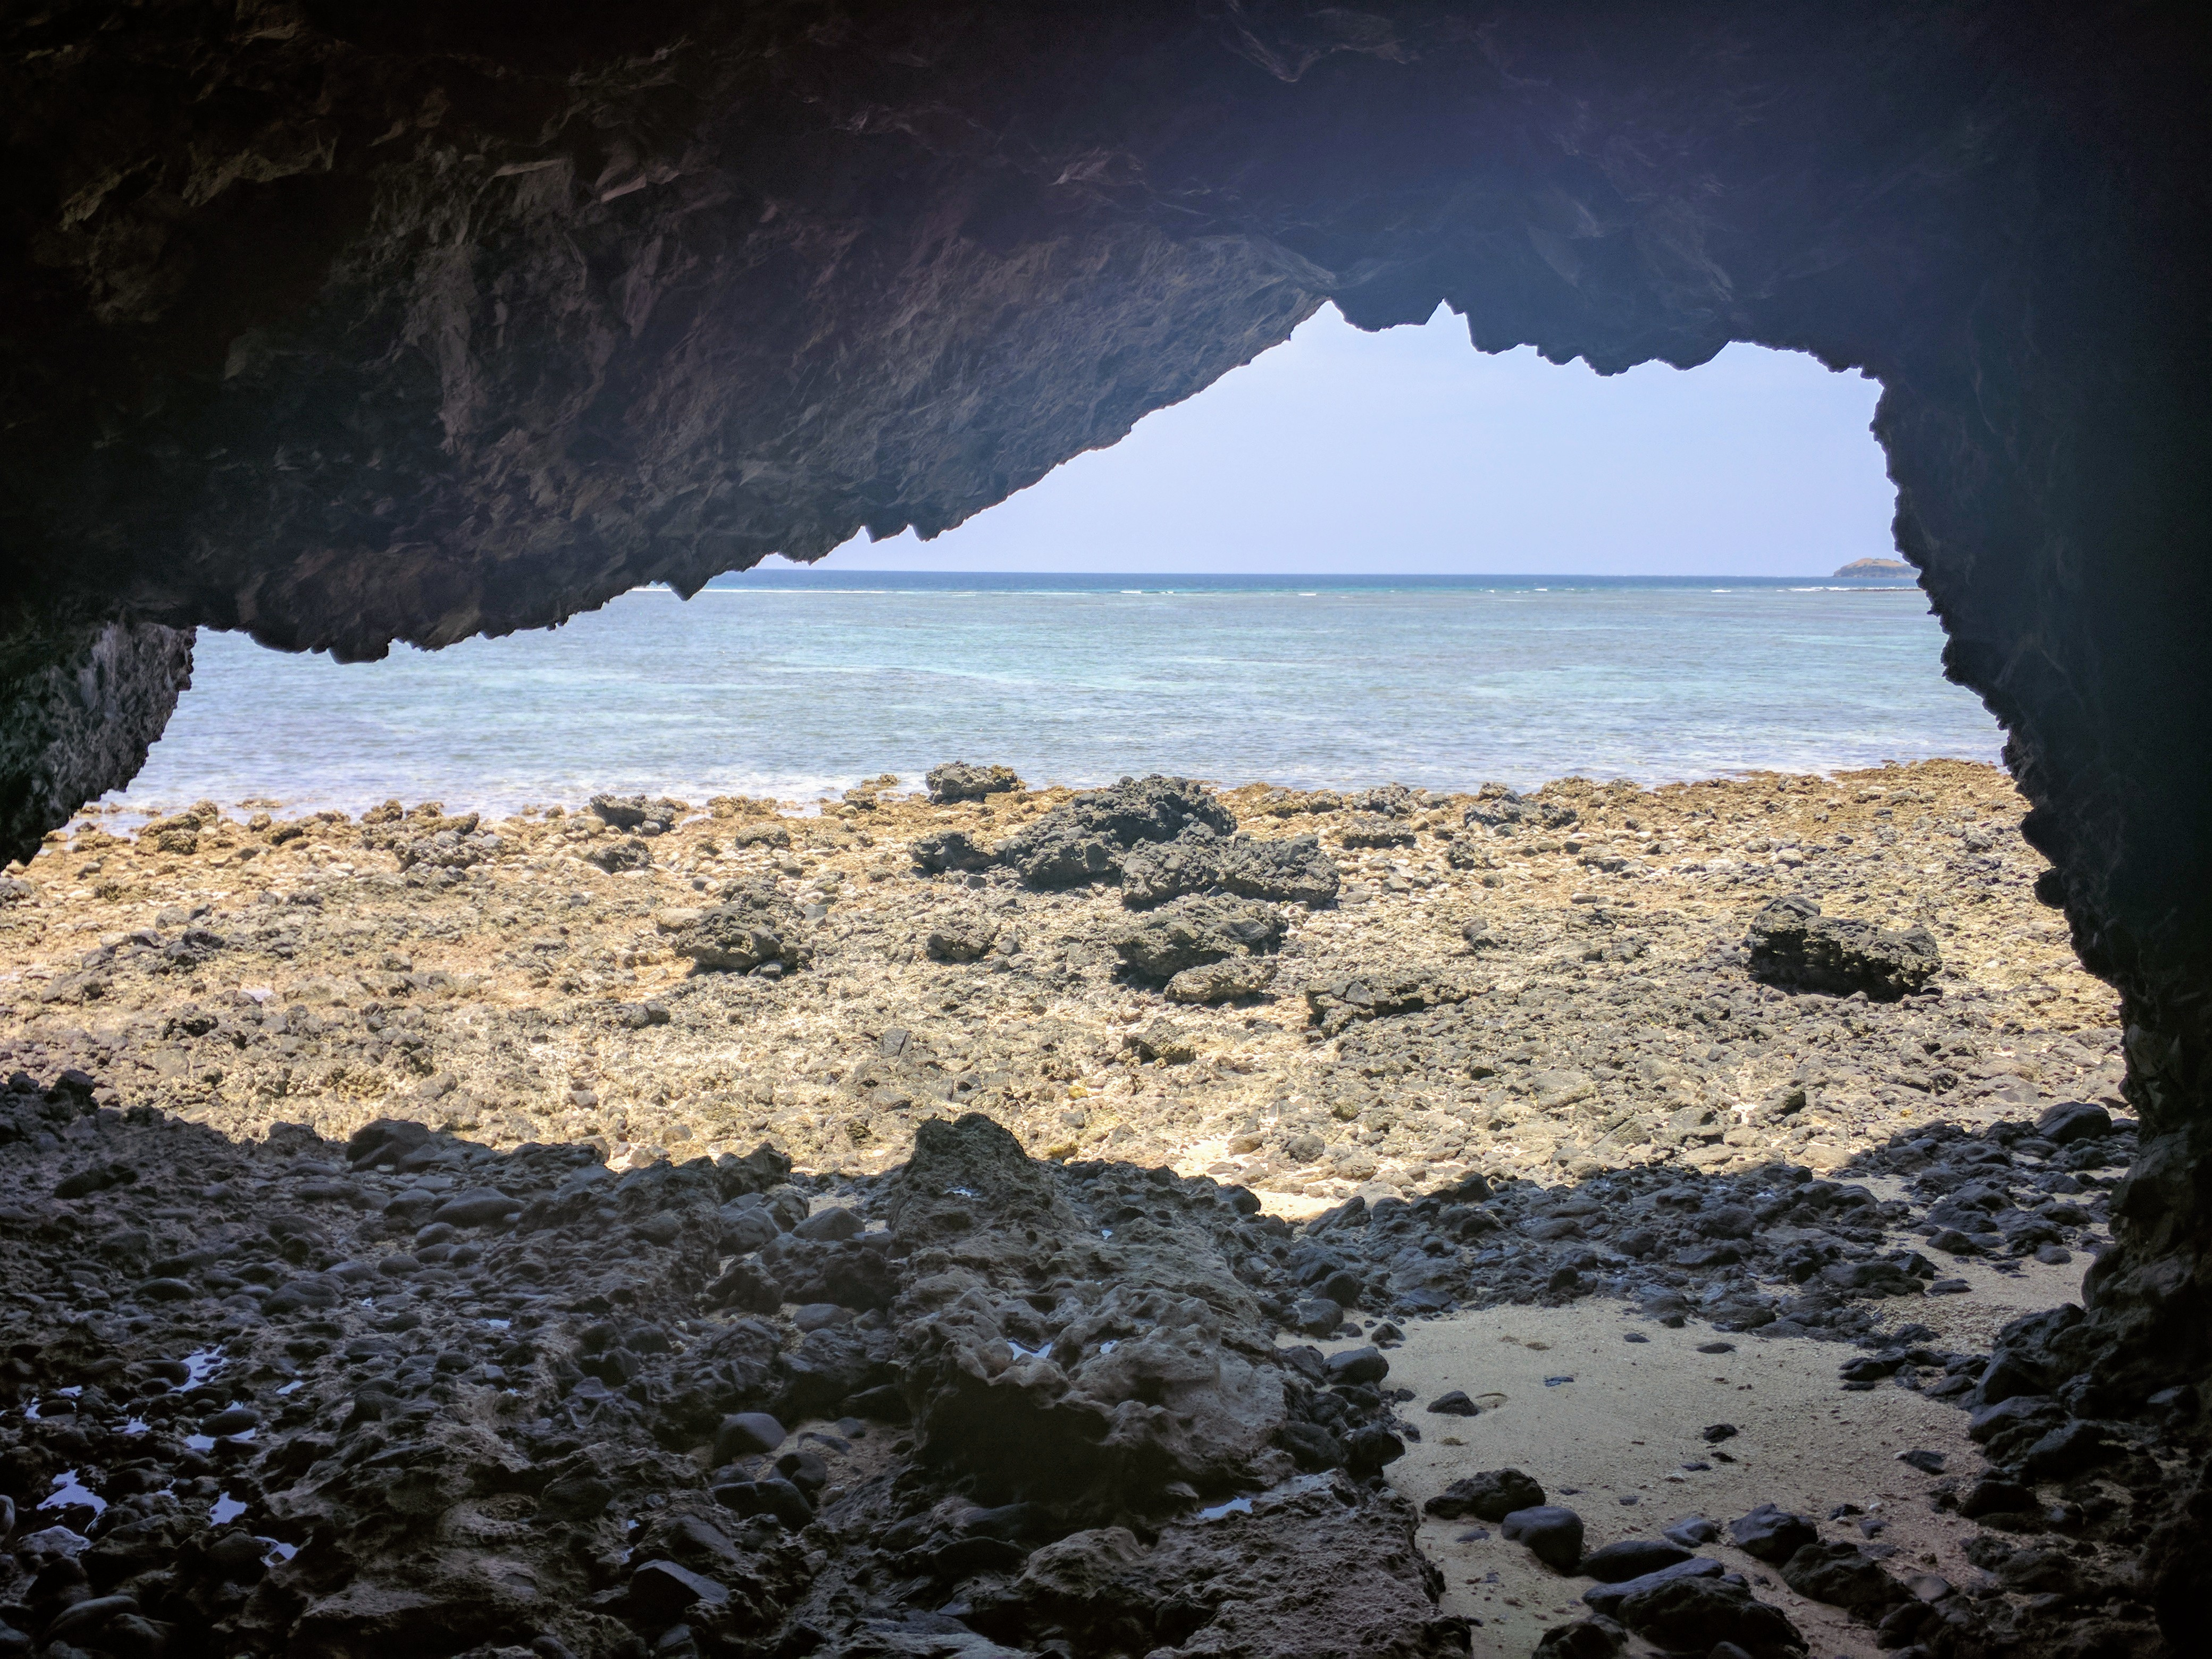 'nother sea cave...I love these shots